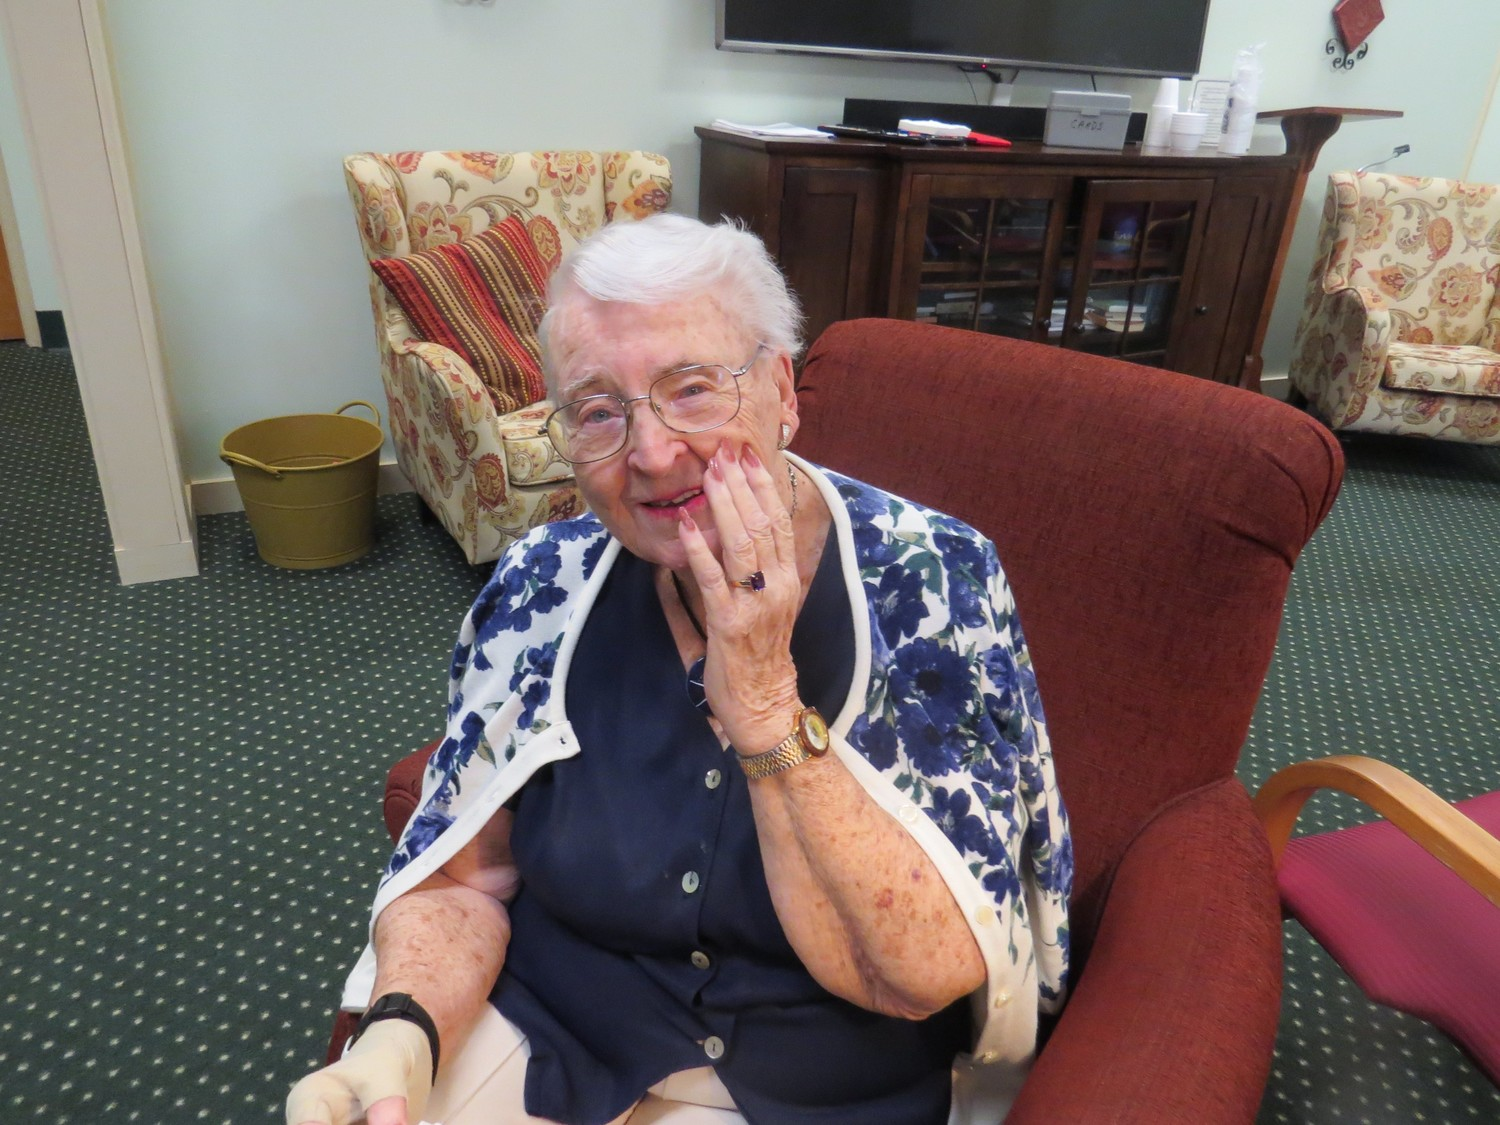 Reunited With Her Engagement Ring:  Winslow Gardens resident Emmalou Kirchmeier poses with her newly recreated engagement ring, a multi-carat emerald cut amethyst created by East Providence-based MRT Jewelers. The ring was her wish, granted by Aldersbridge Communities' newly launched ElderVentures program for its residents.